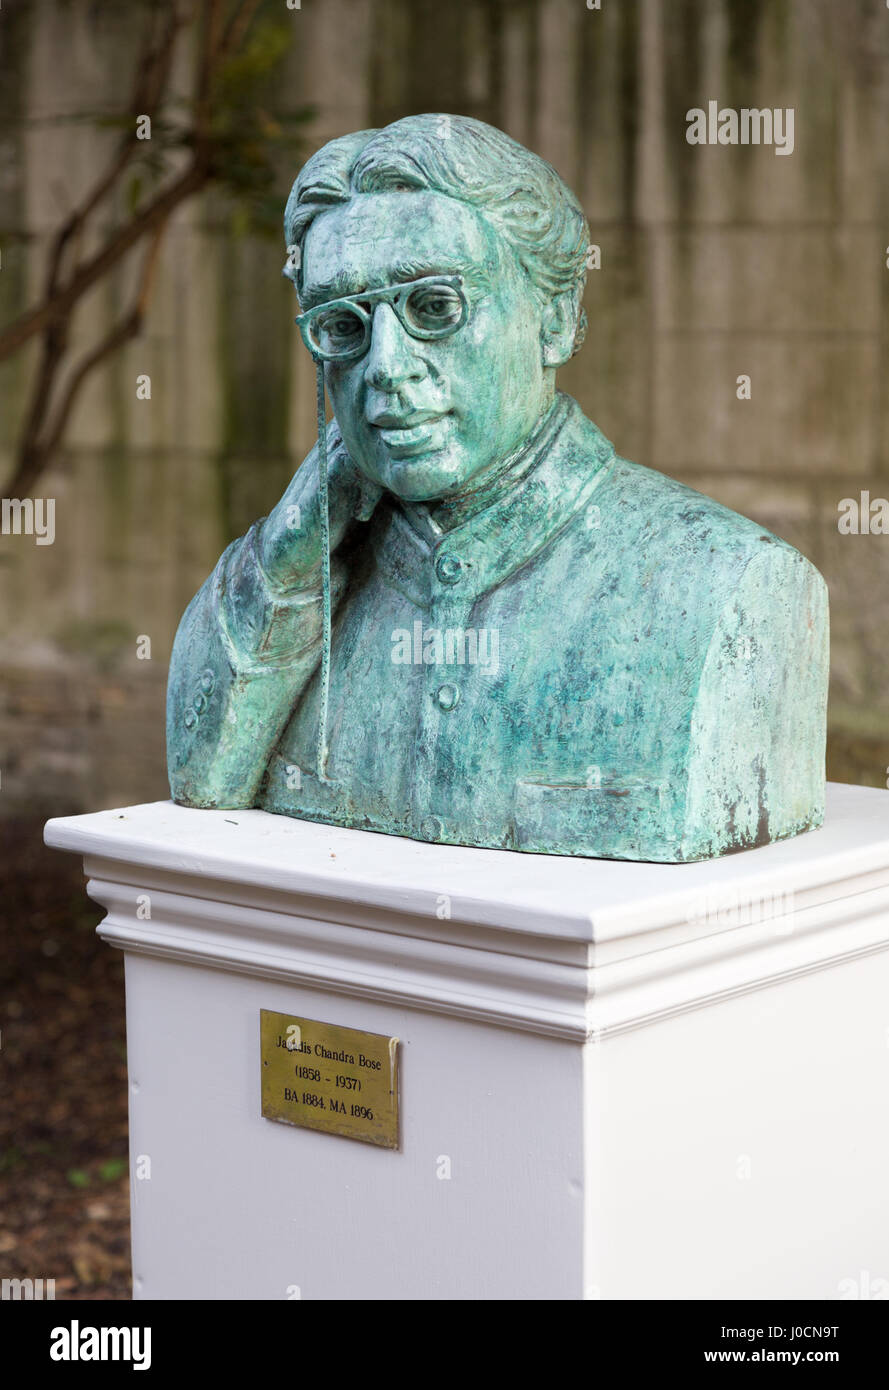 Jagadish Chandra Bose - or Jagadis Chandra Bose,  a bust in the grounds of Christs College Cambridge UK - Stock Image